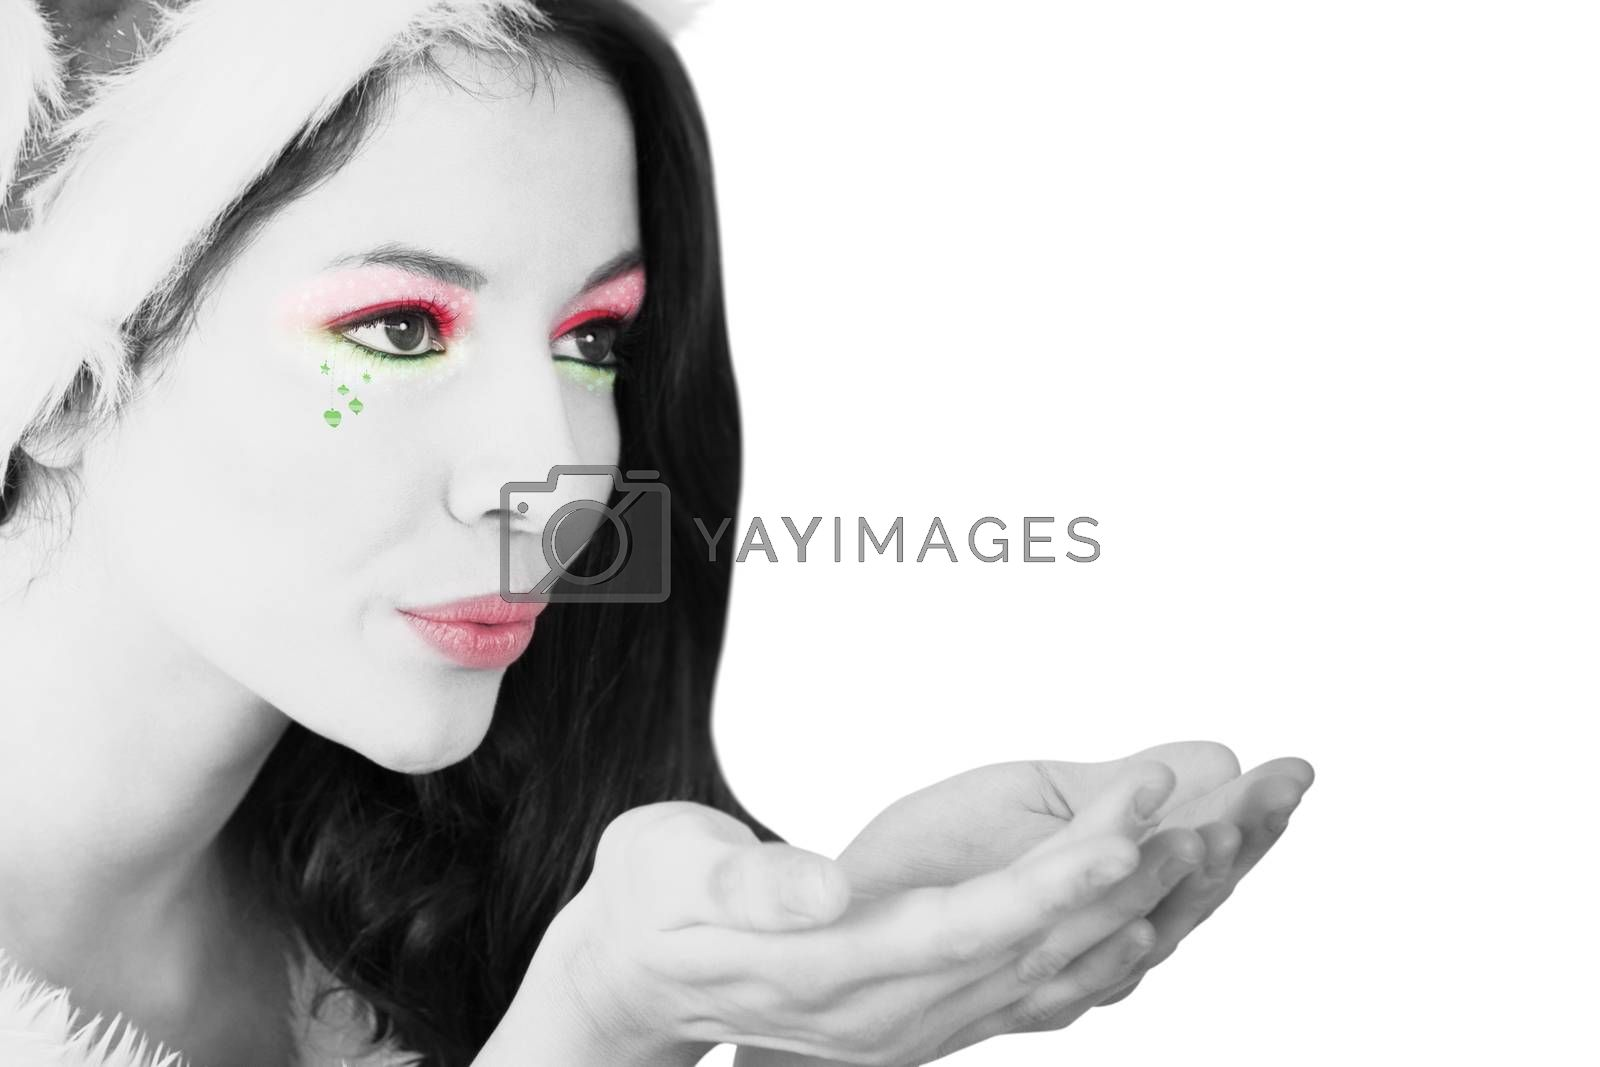 Girl with festive makeup in black and white on white background